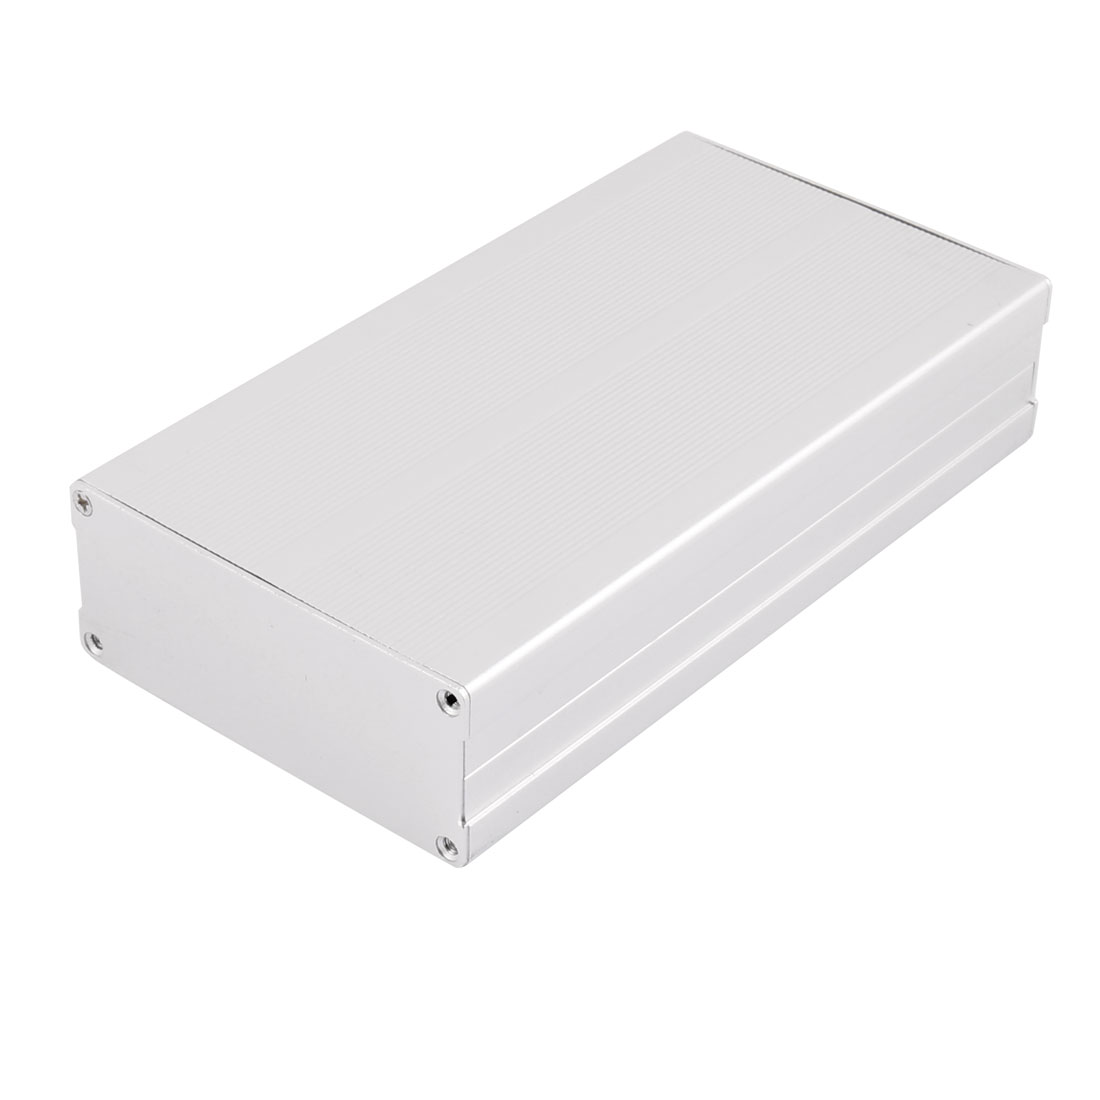 183 x 97 x 40mm Multi-purpose Electronic Extruded Aluminum Enclosure Silver Tone